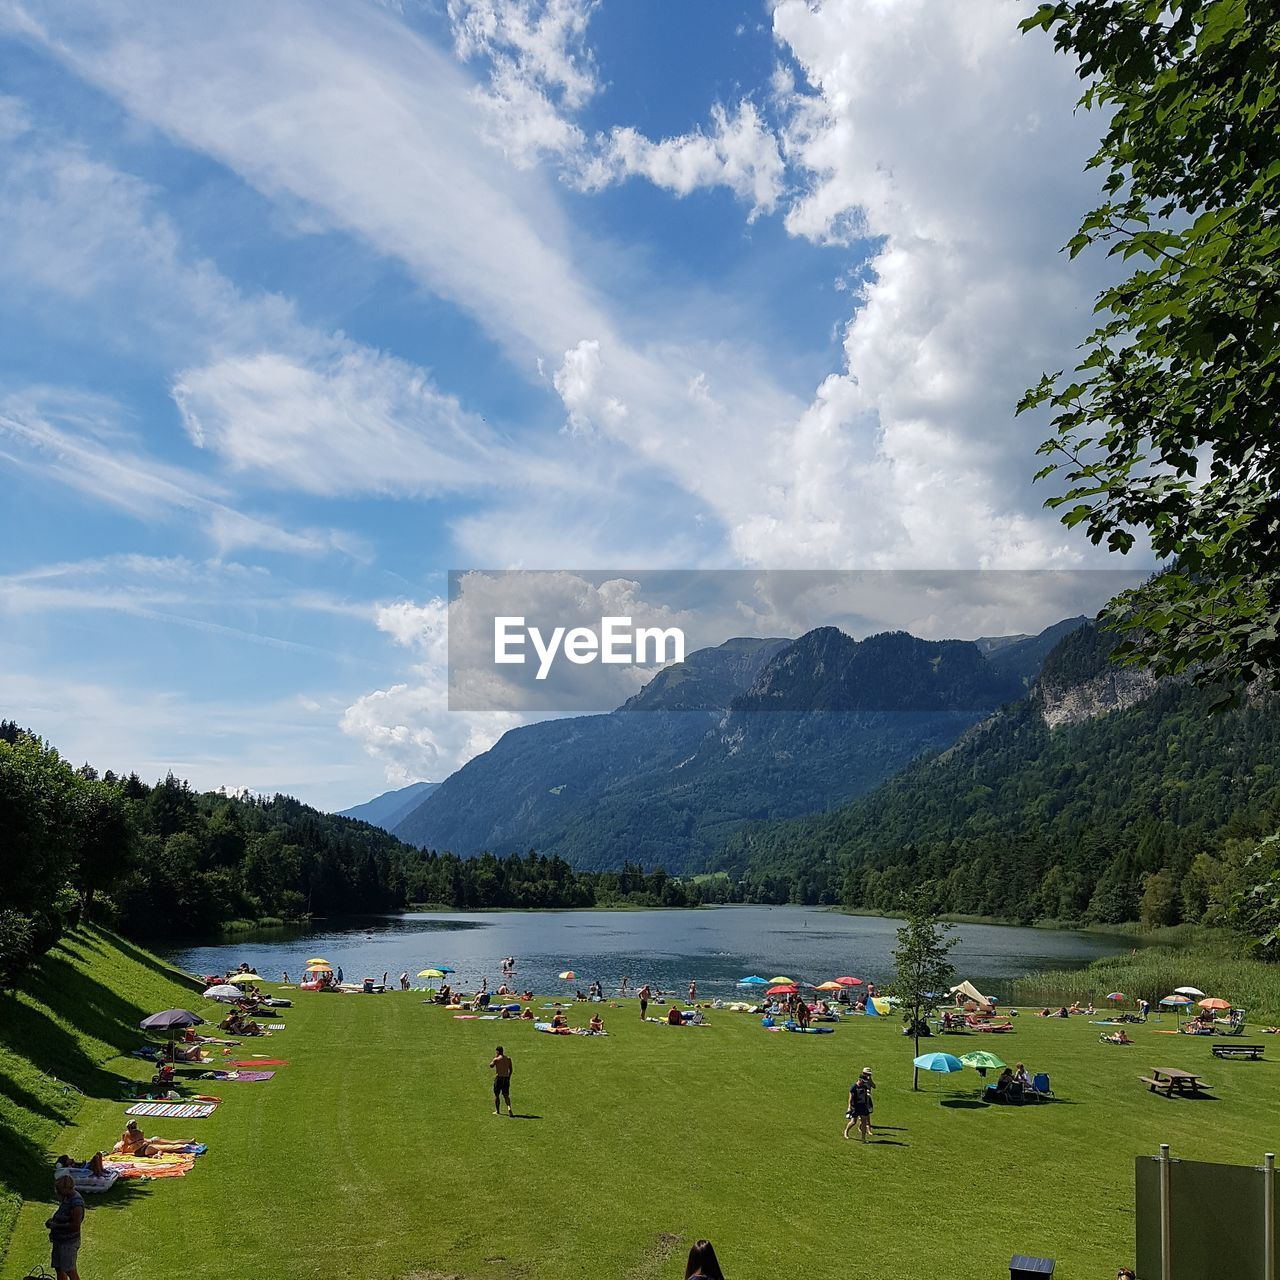 cloud - sky, sky, plant, beauty in nature, scenics - nature, mountain, group of people, nature, tree, day, water, leisure activity, grass, real people, land, crowd, idyllic, large group of people, relaxation, outdoors